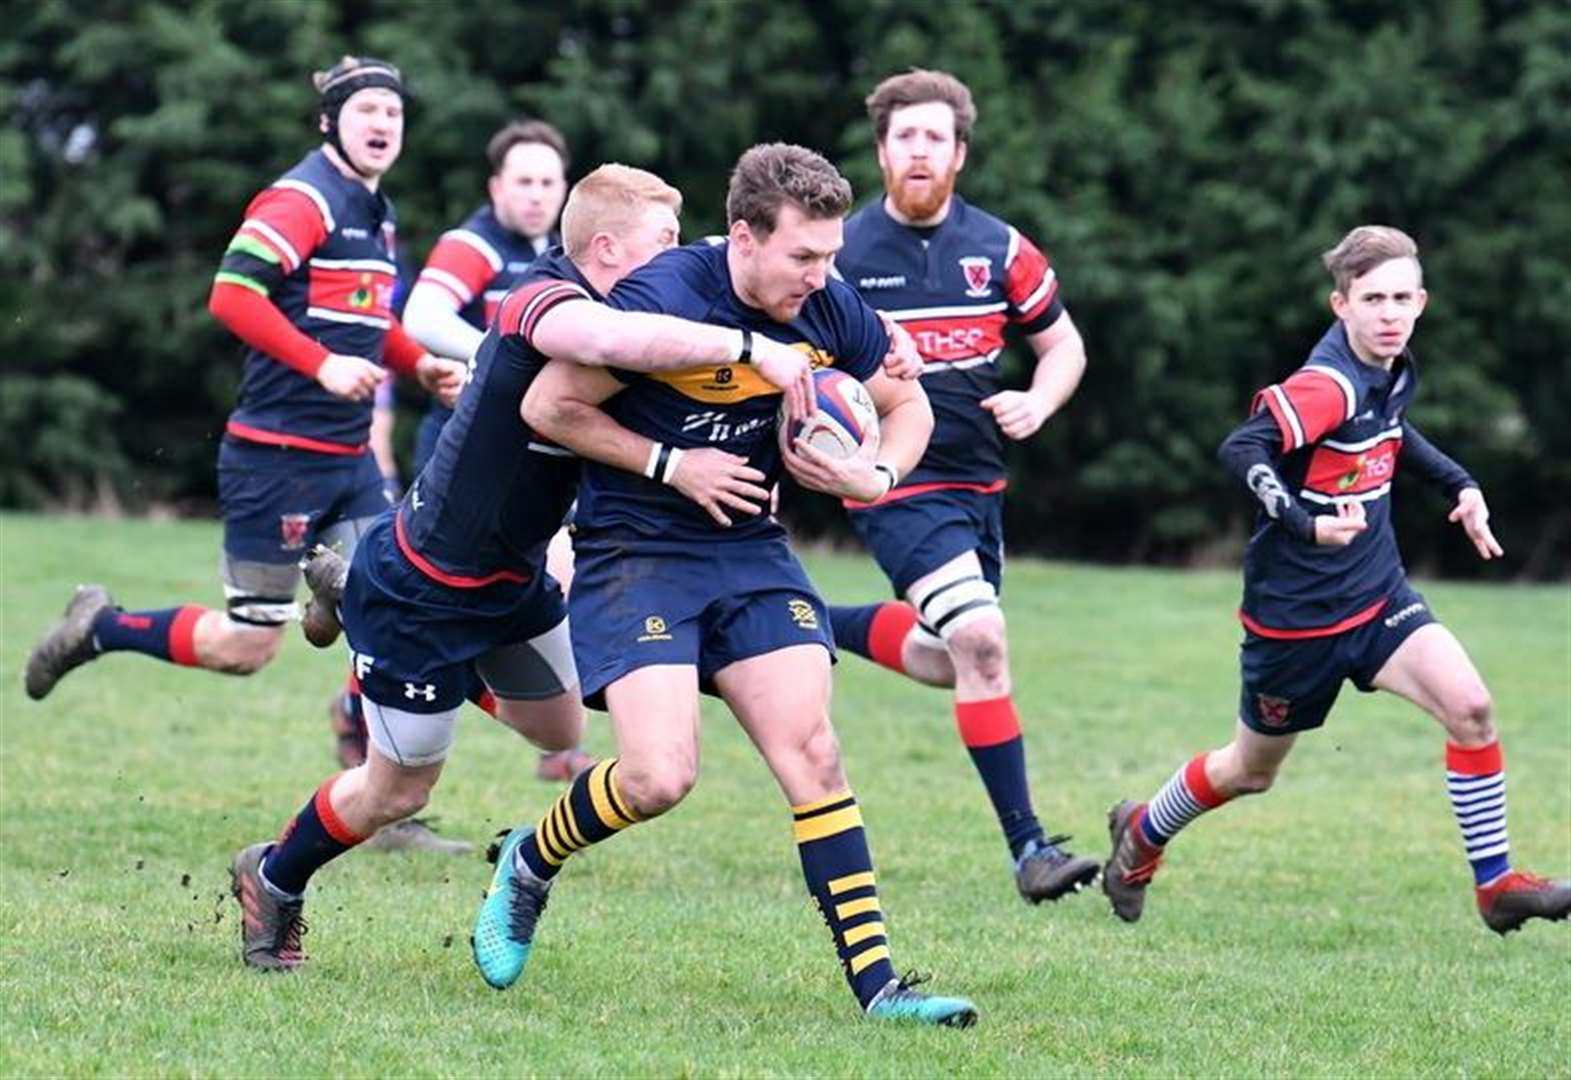 RUGBY UNION: Bourne bounce back after slow start to claim crucial success